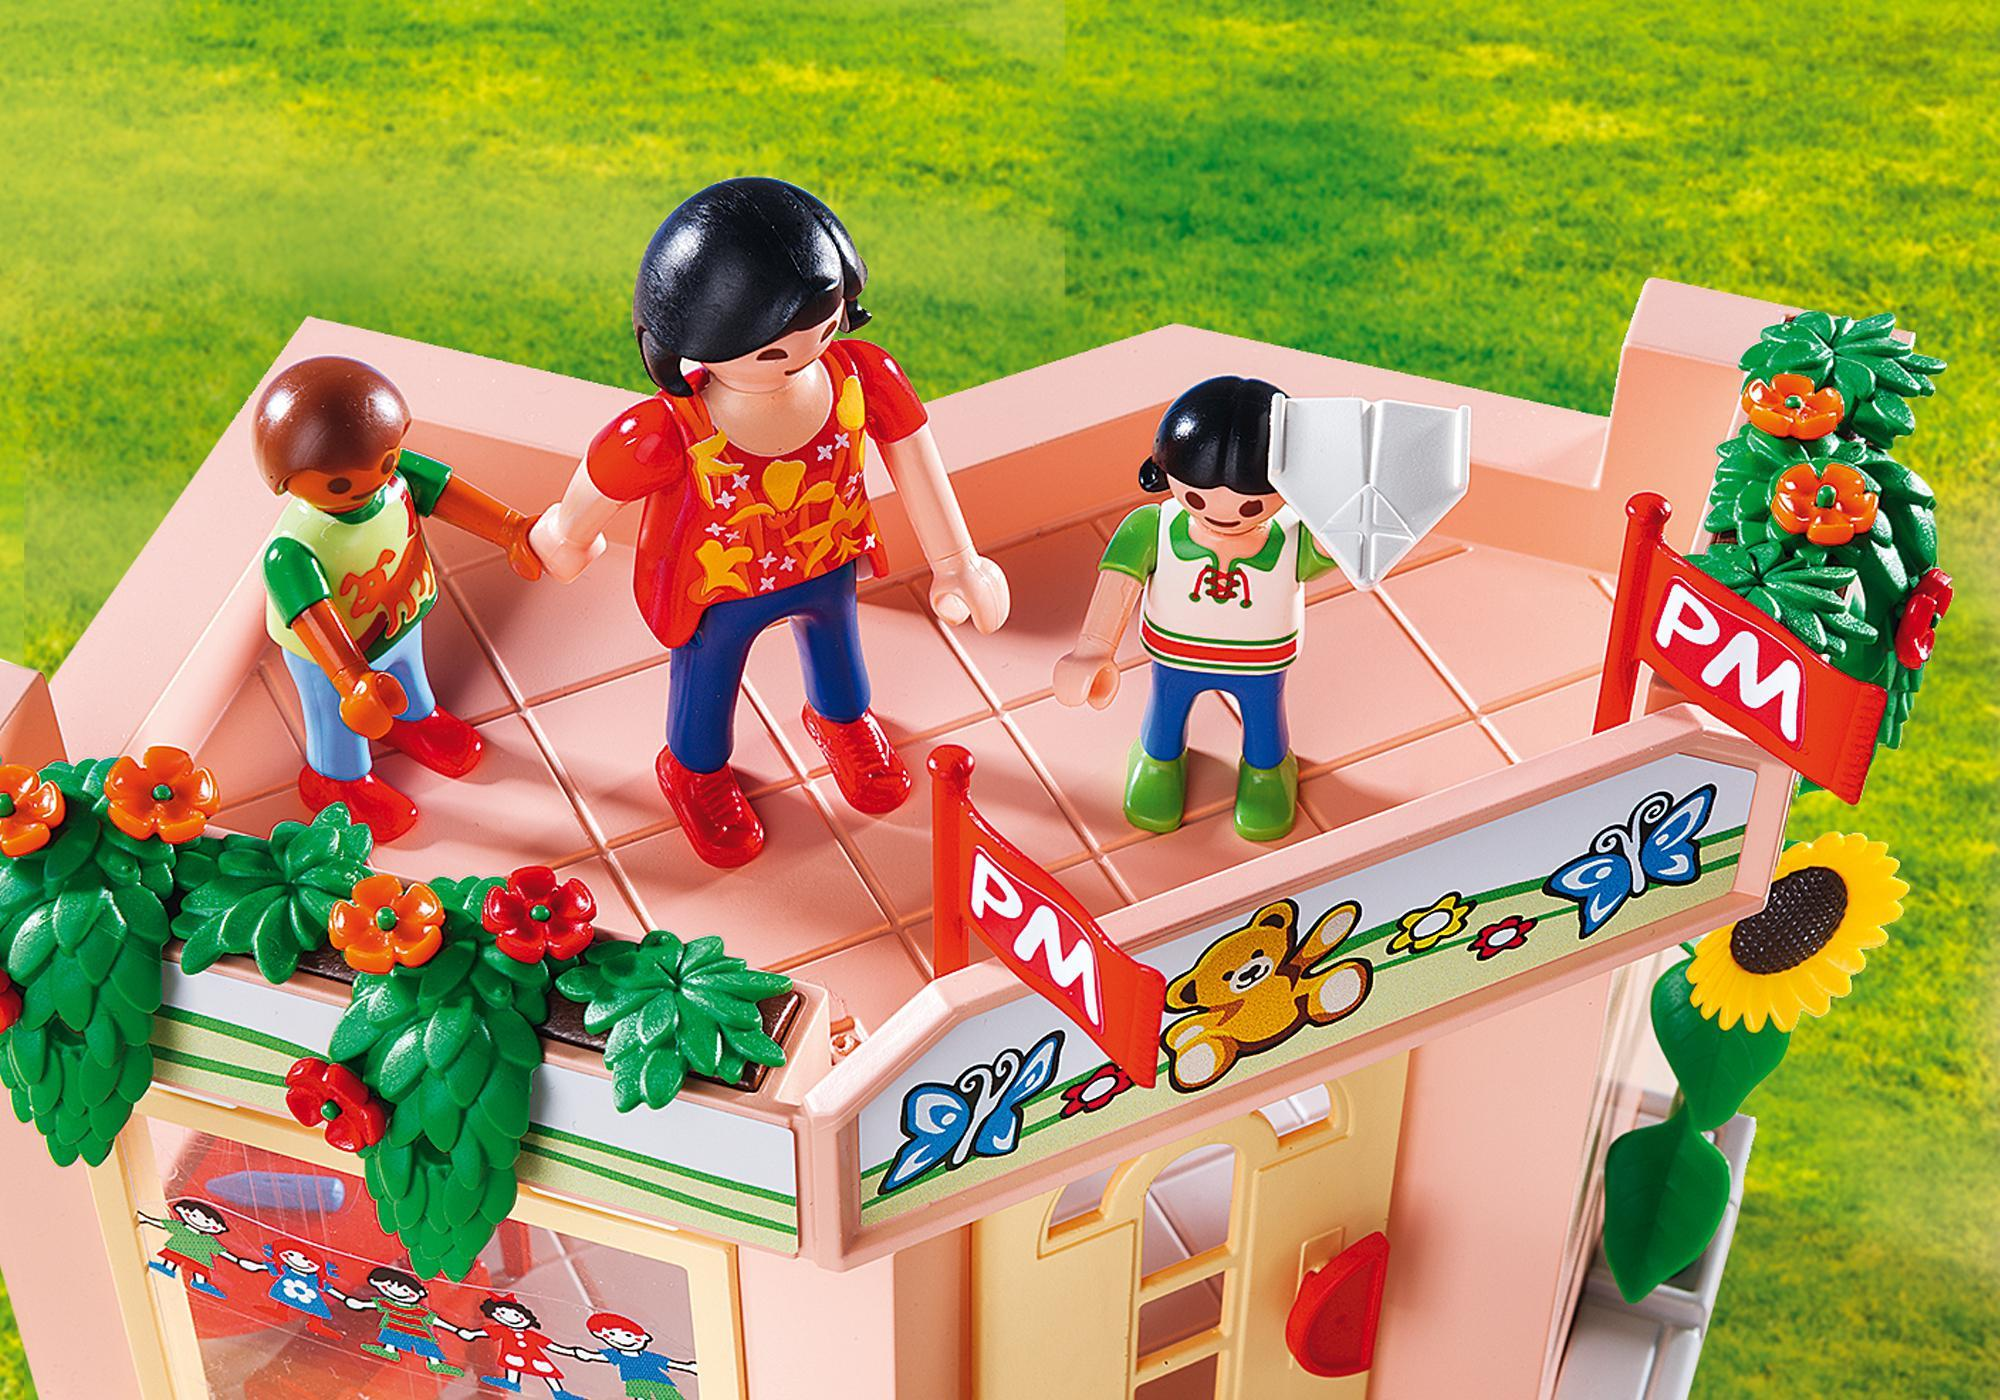 http://media.playmobil.com/i/playmobil/5634_product_extra1